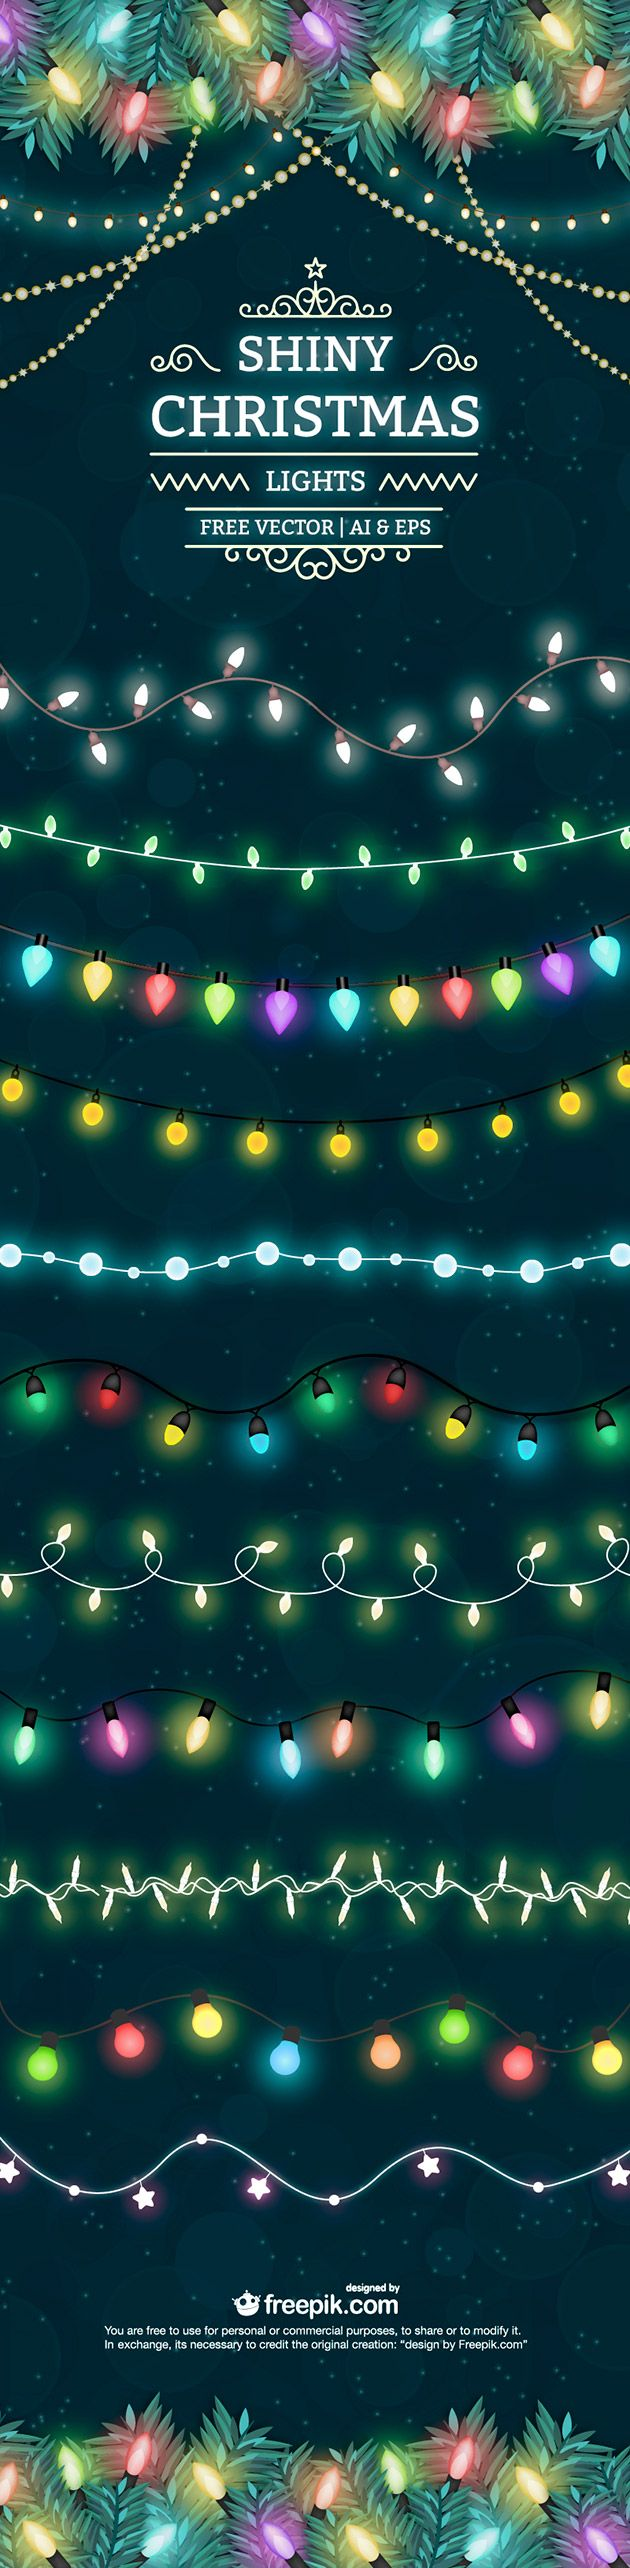 Shiny Christmas lights free vector set